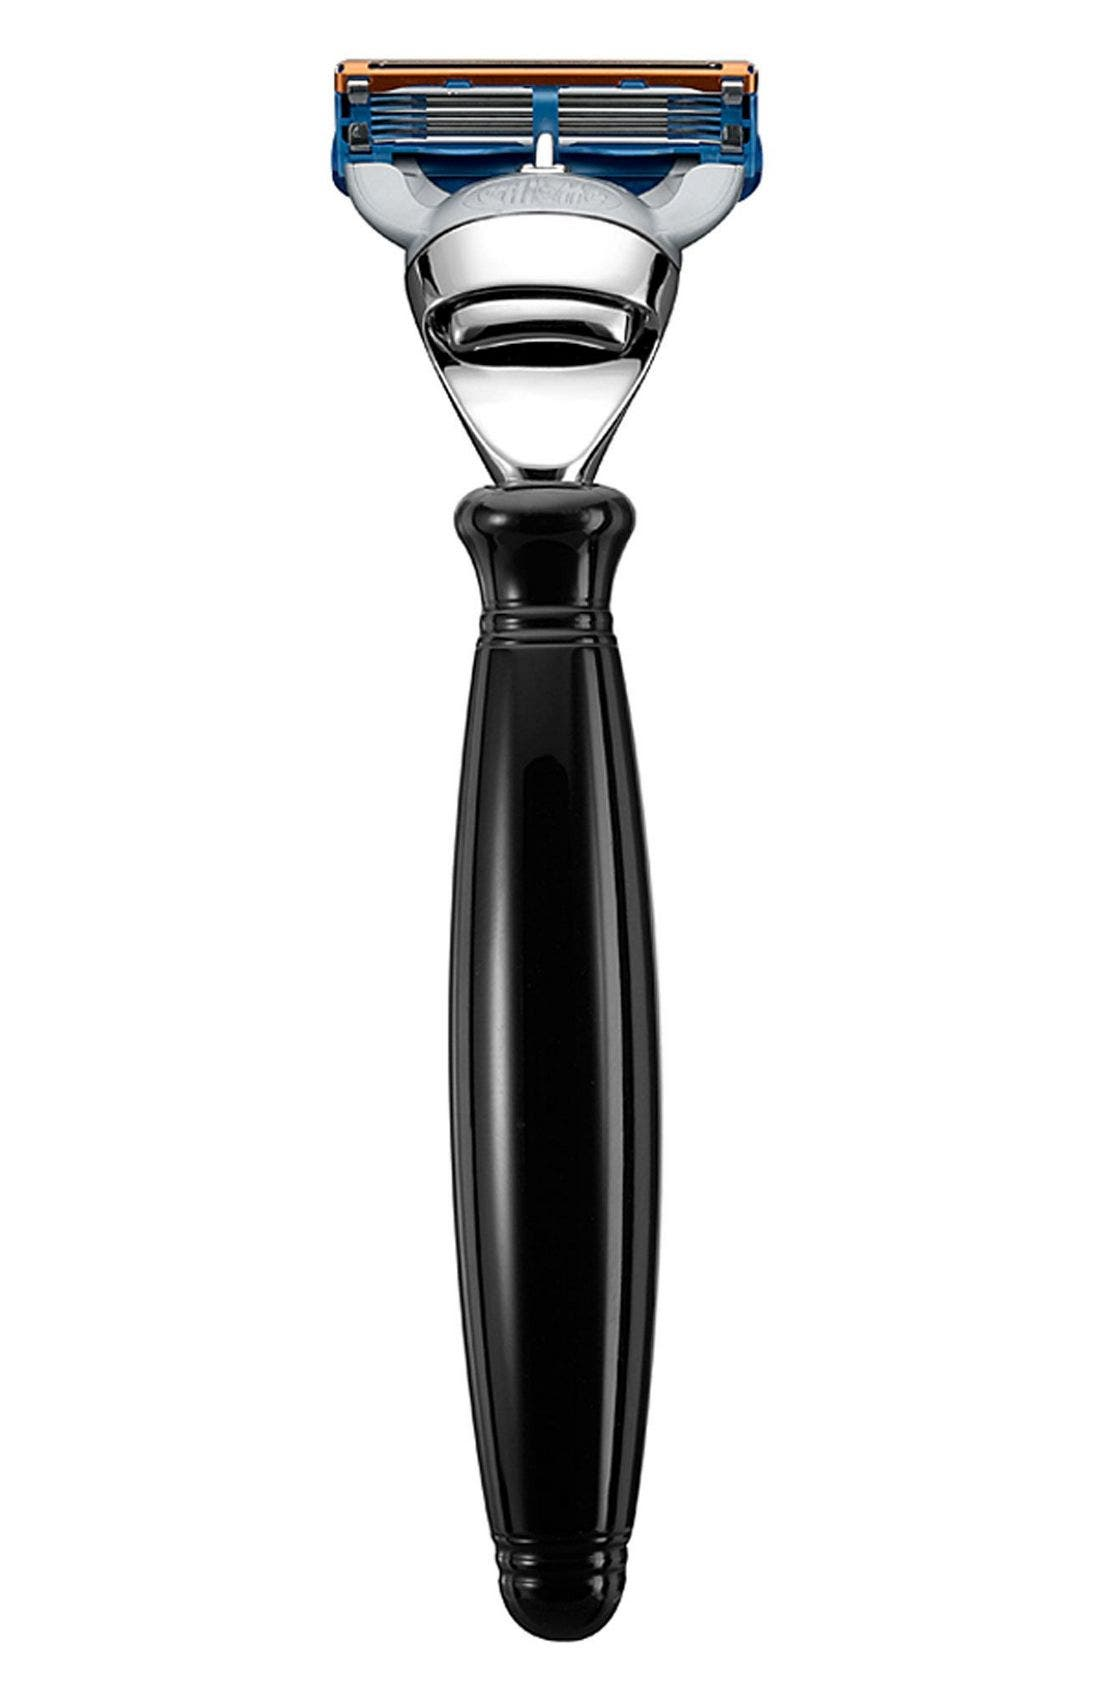 The Art of Shaving® Fusion™ Black Nickel Razor